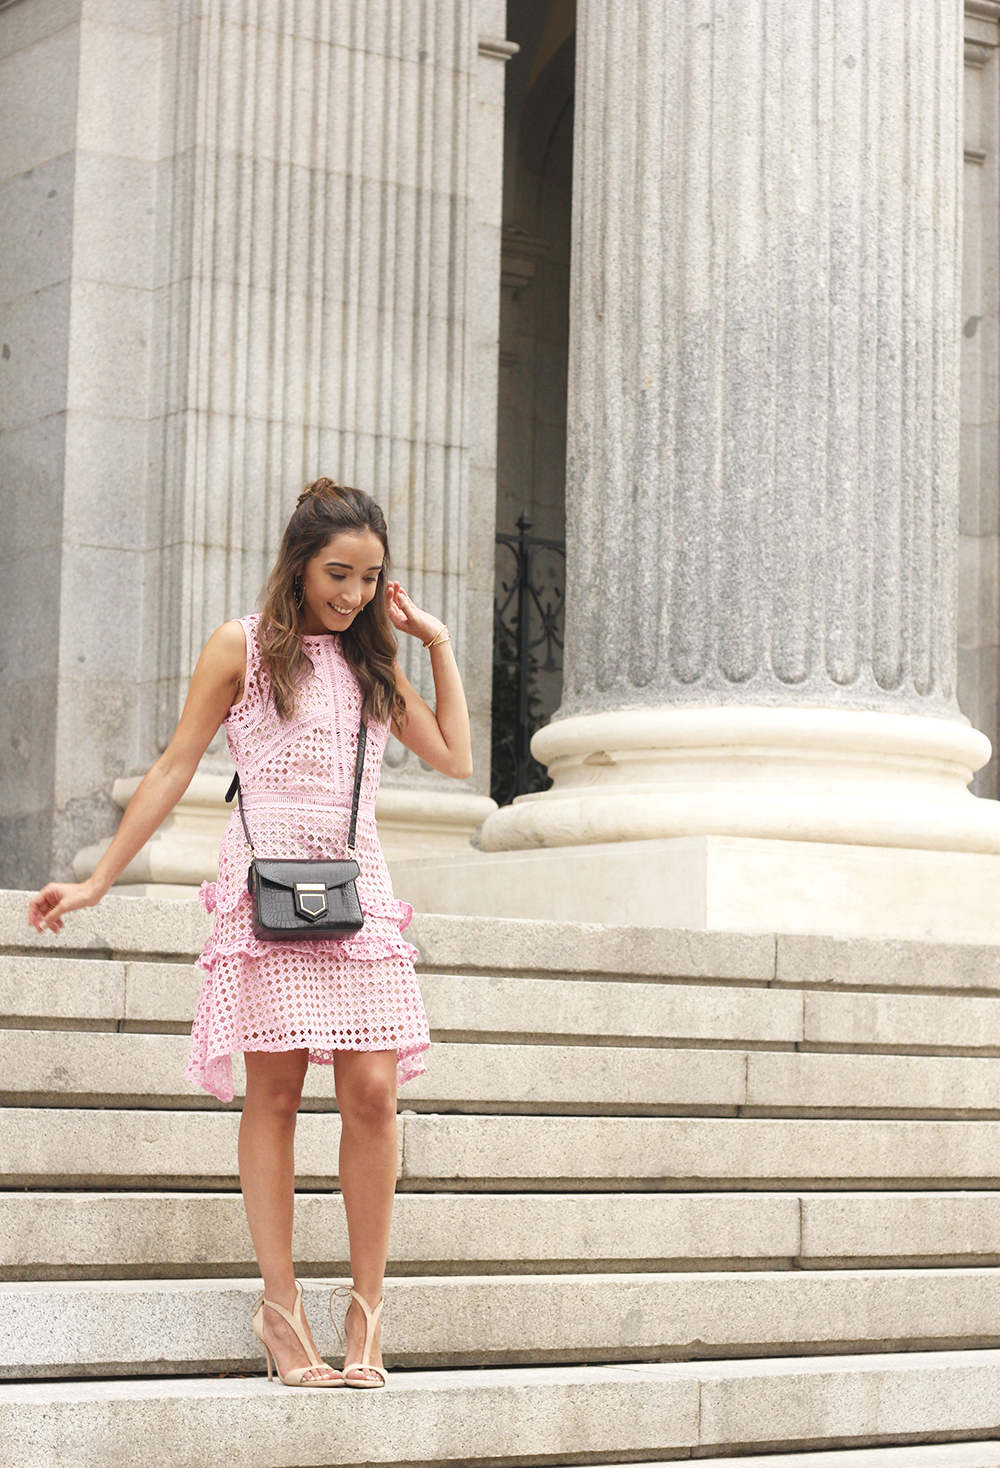 Pink dress summer givenchy bag nude heels outfit girl style07